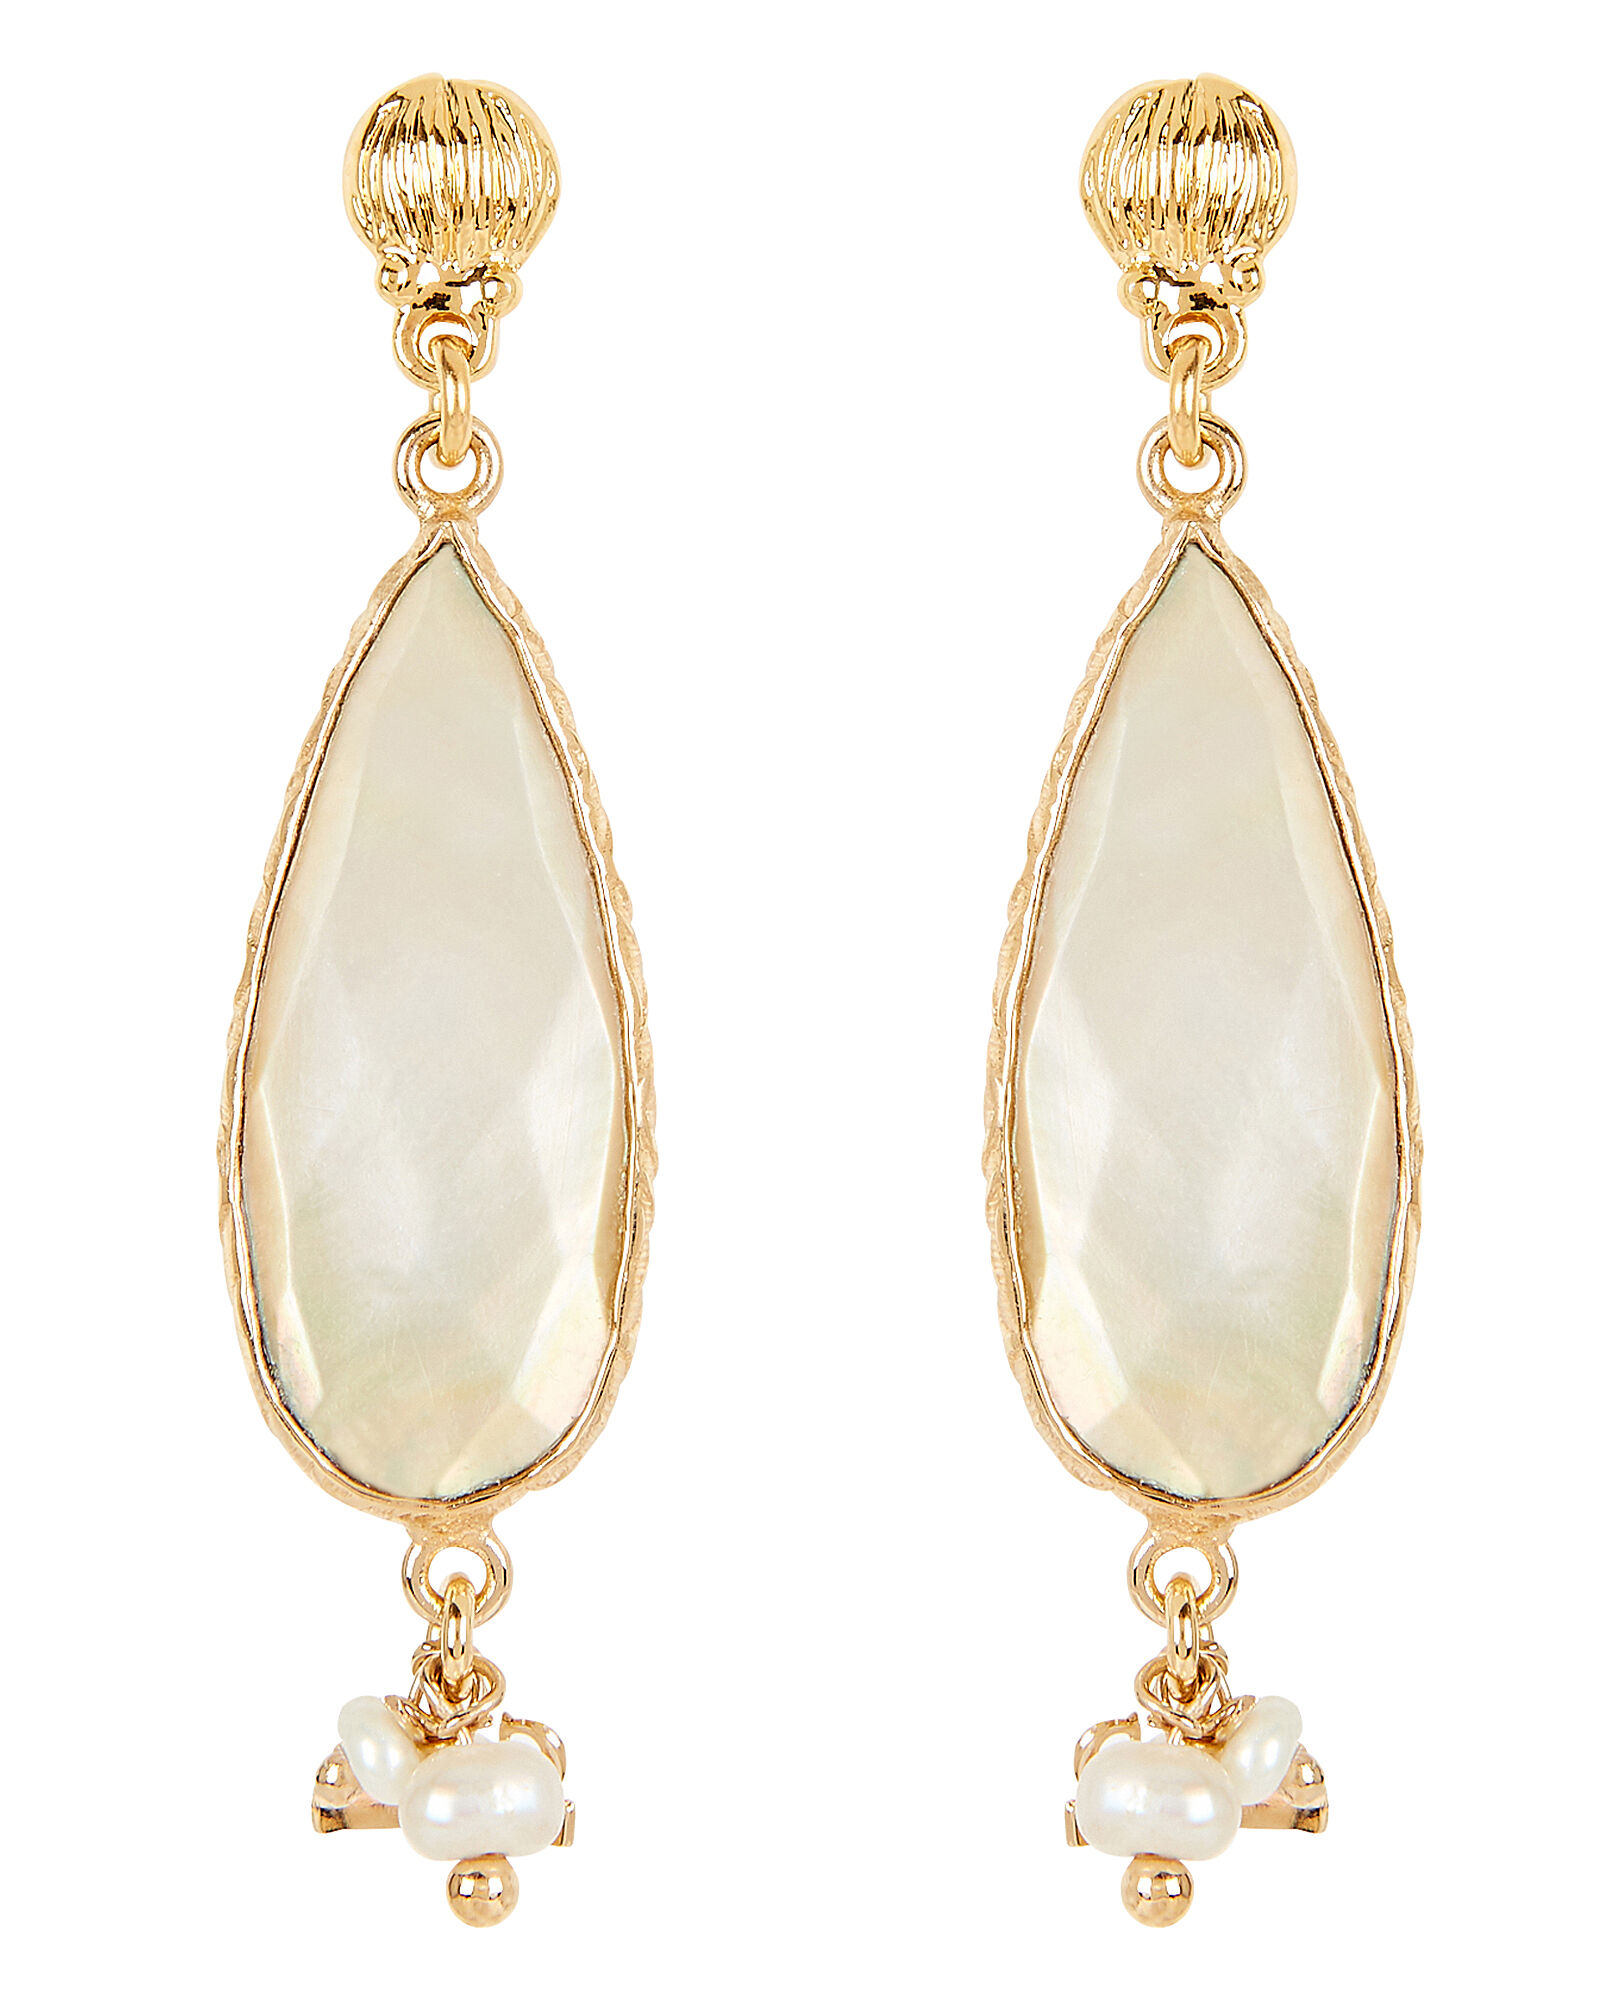 Serti Goutte Mother-Of-Pearl Earrings, GOLD/PEARL, hi-res